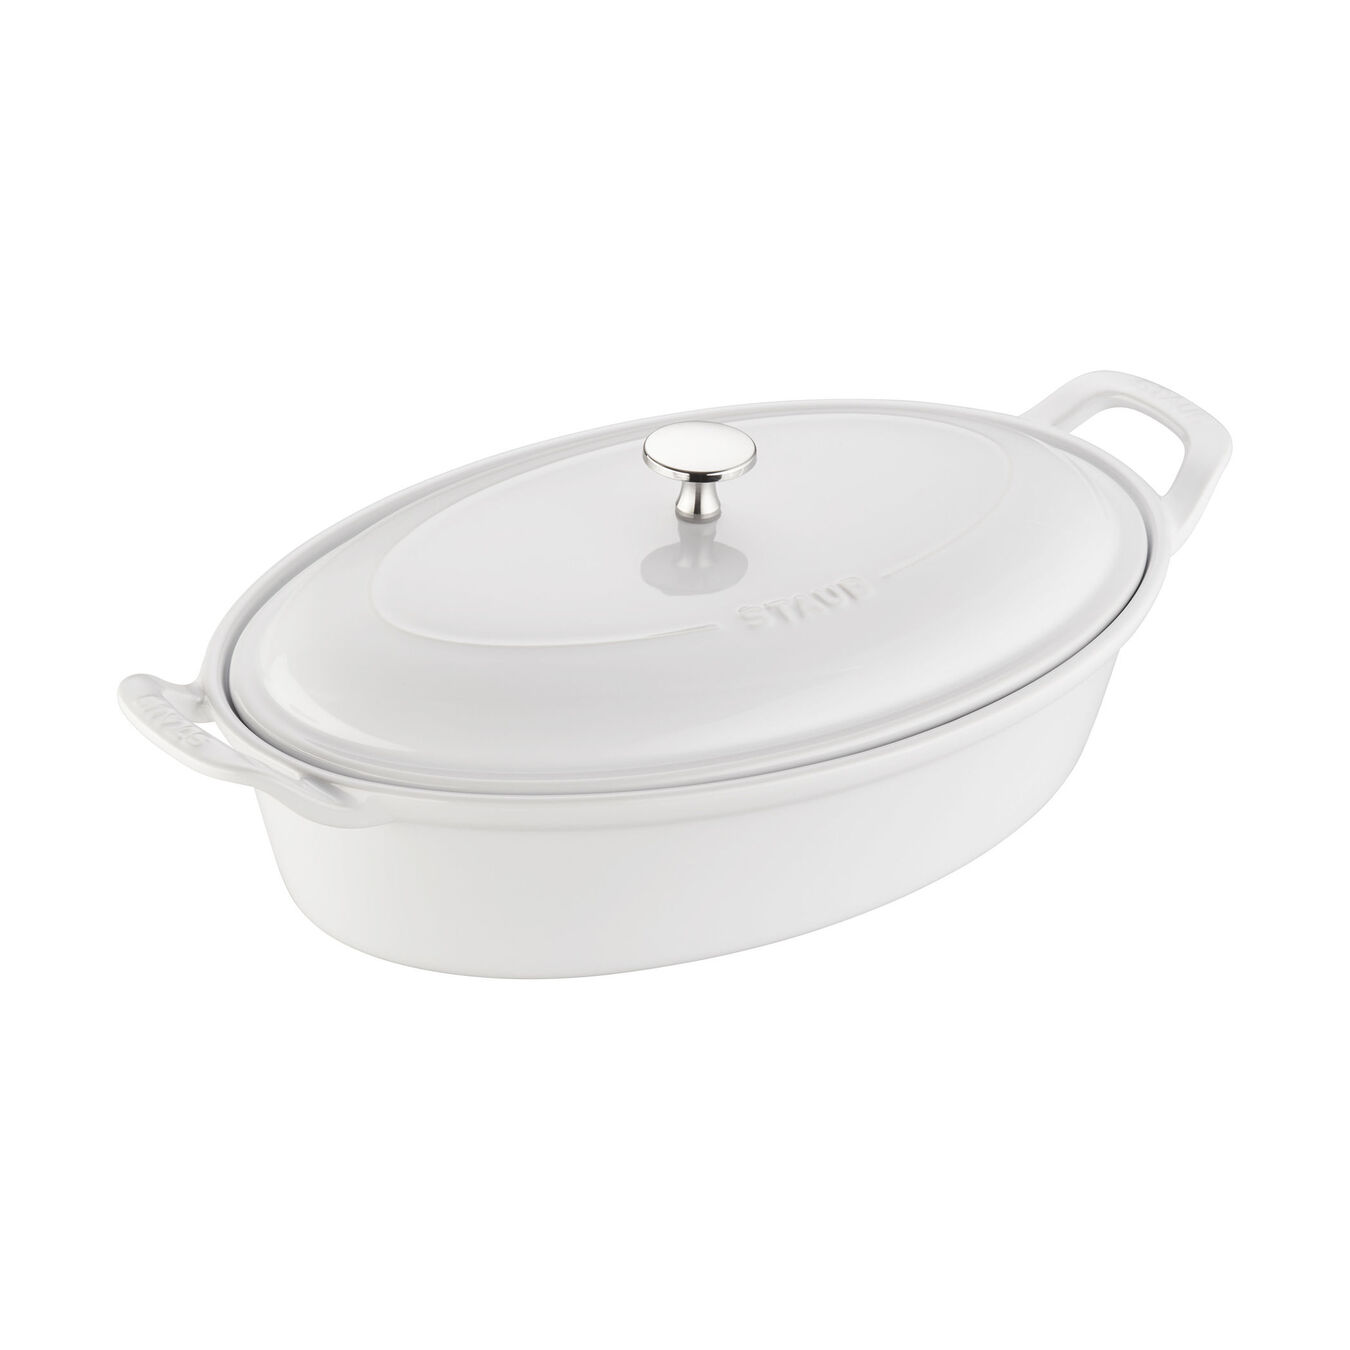 14-inch Oval Covered Baking Dish - White,,large 1